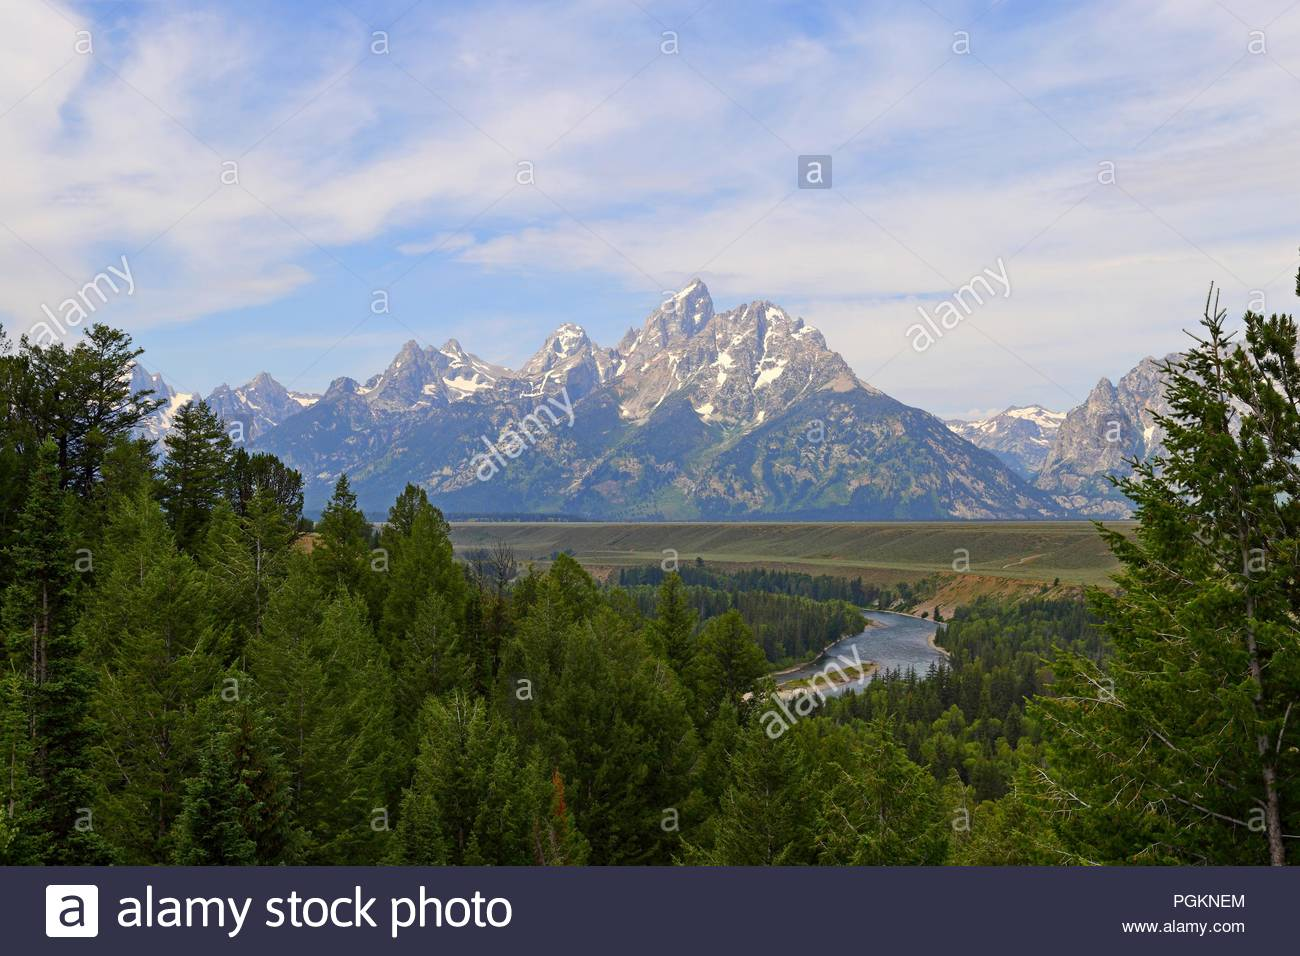 Snake River Overlook in Wyoming with the Grand Tetons in the 1300x956